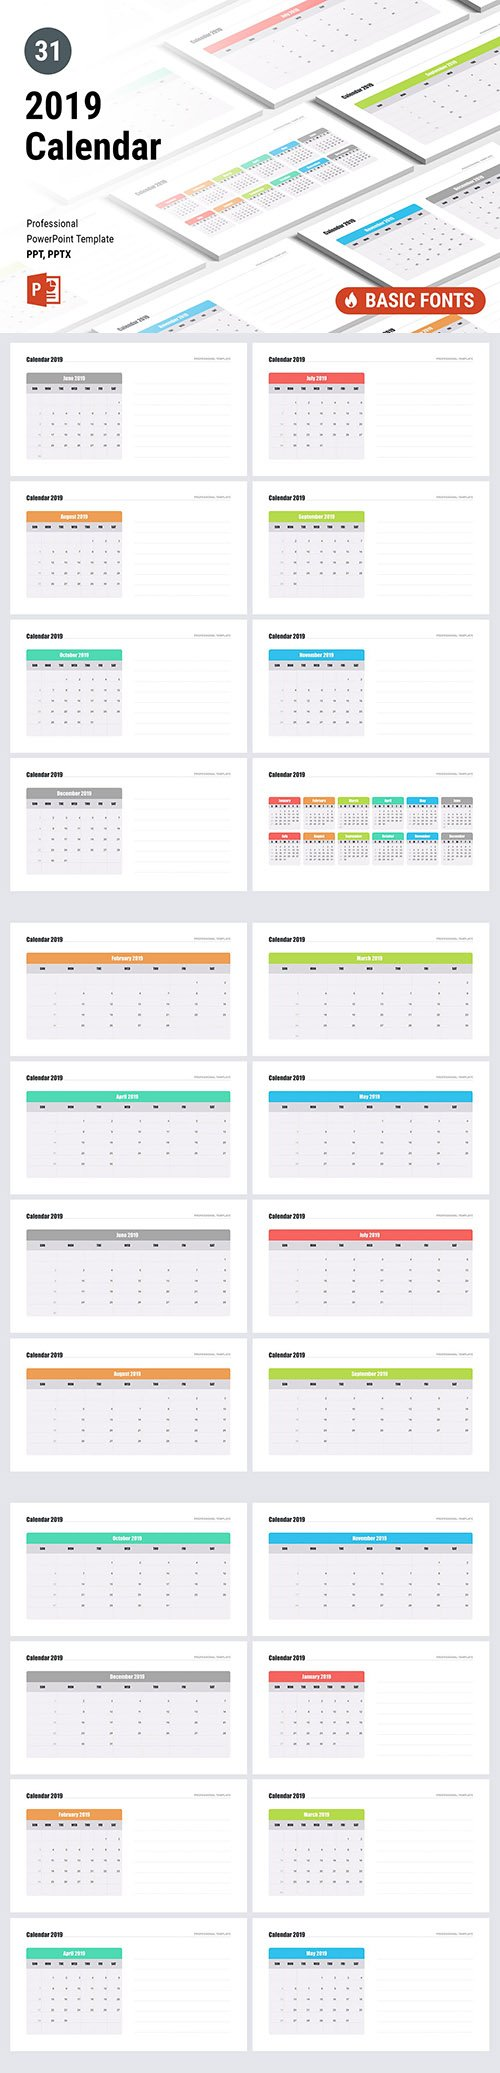 Calendar 2019 for PowerPoint and Keynote